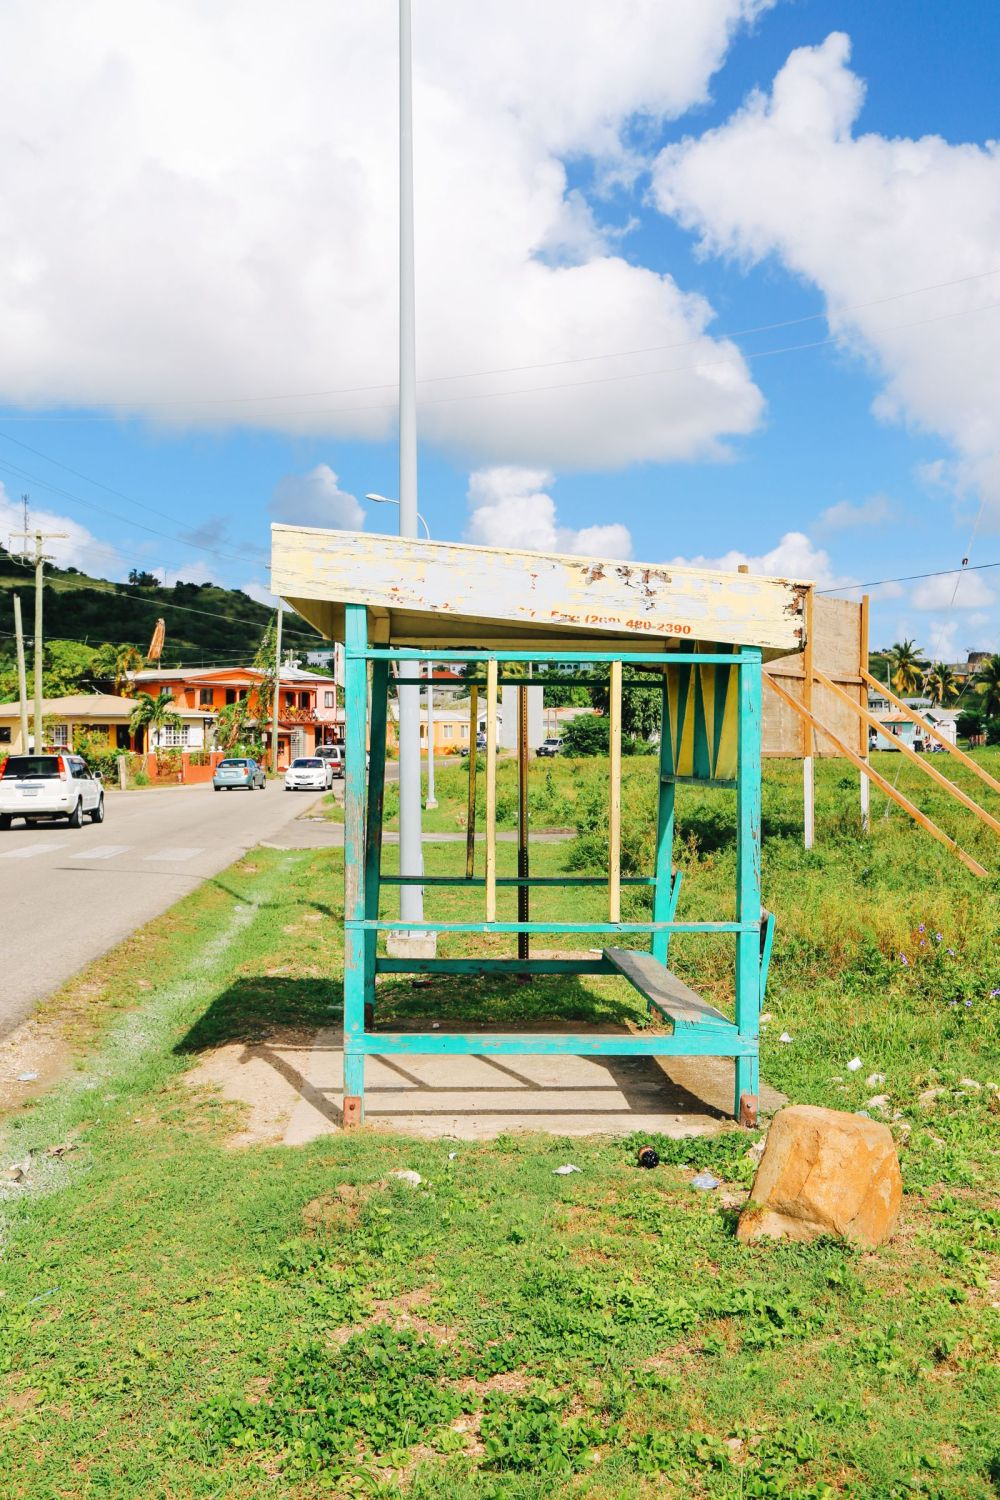 Exploring The Caribbean Island Of Antigua By Land - Part 2 (53)